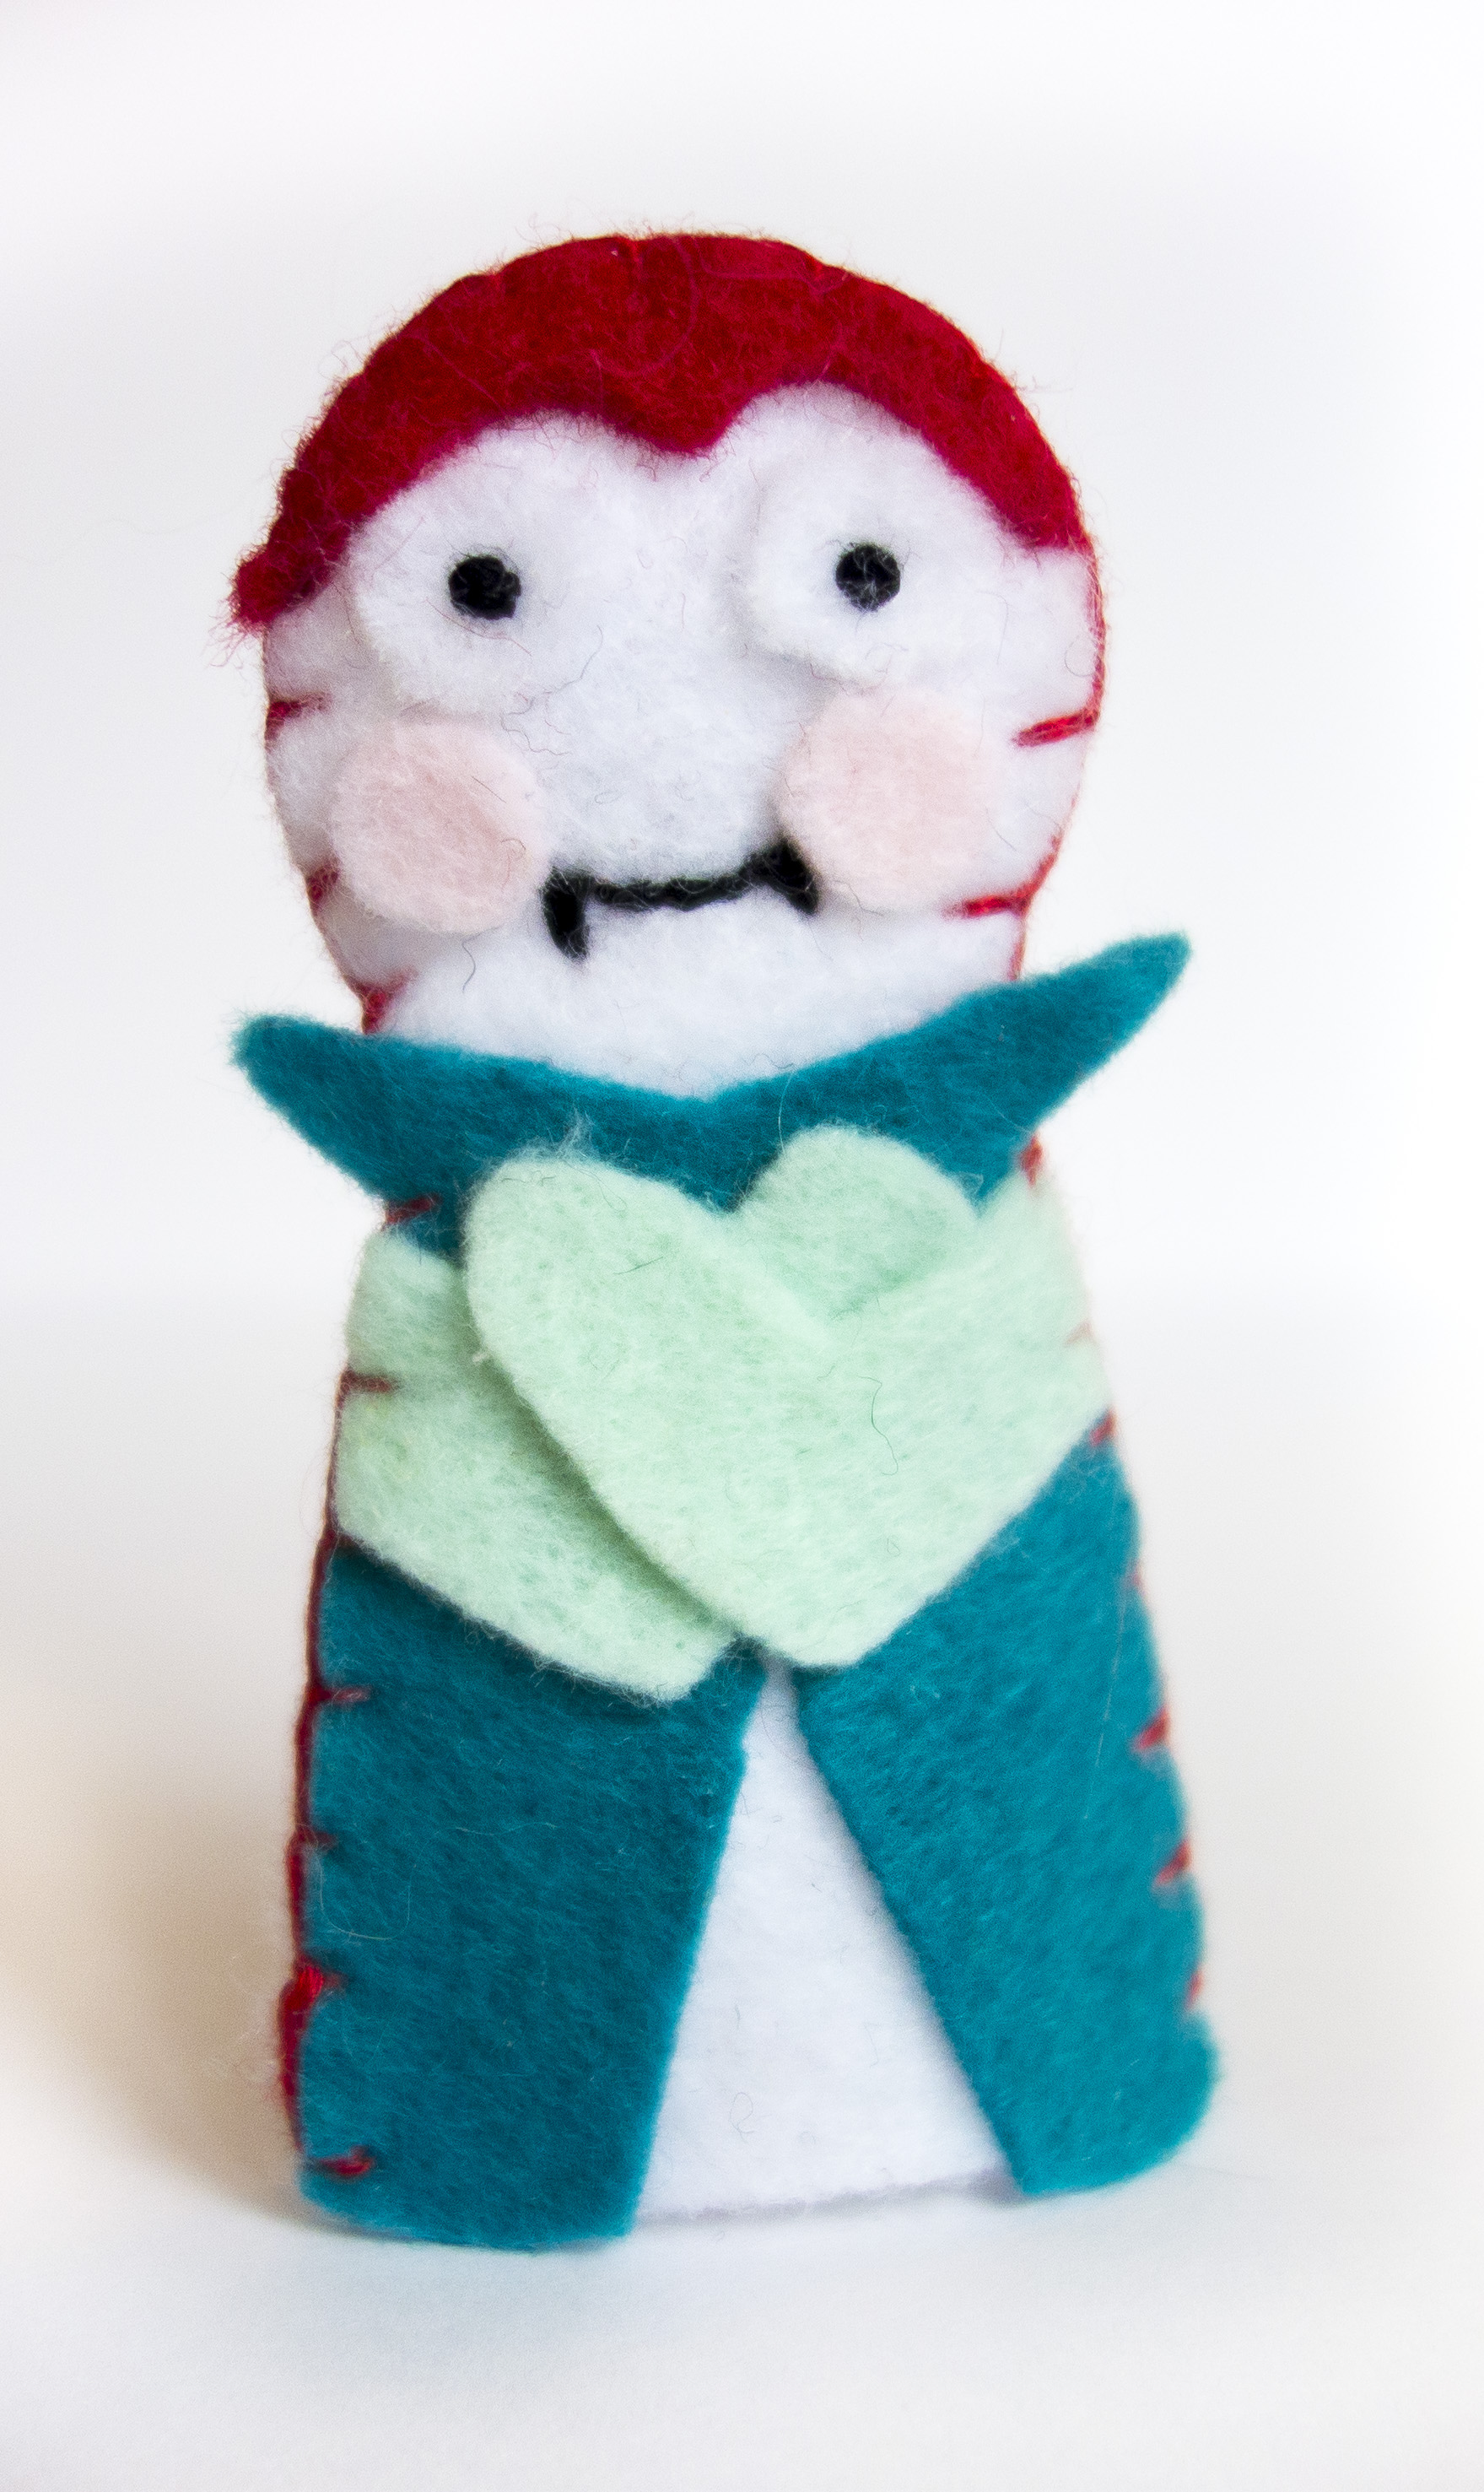 Vampire - No tricks here, just treats. Sweet pink-cheeked smile with a bite, French knot eyes, blanket stitched all along the sides.